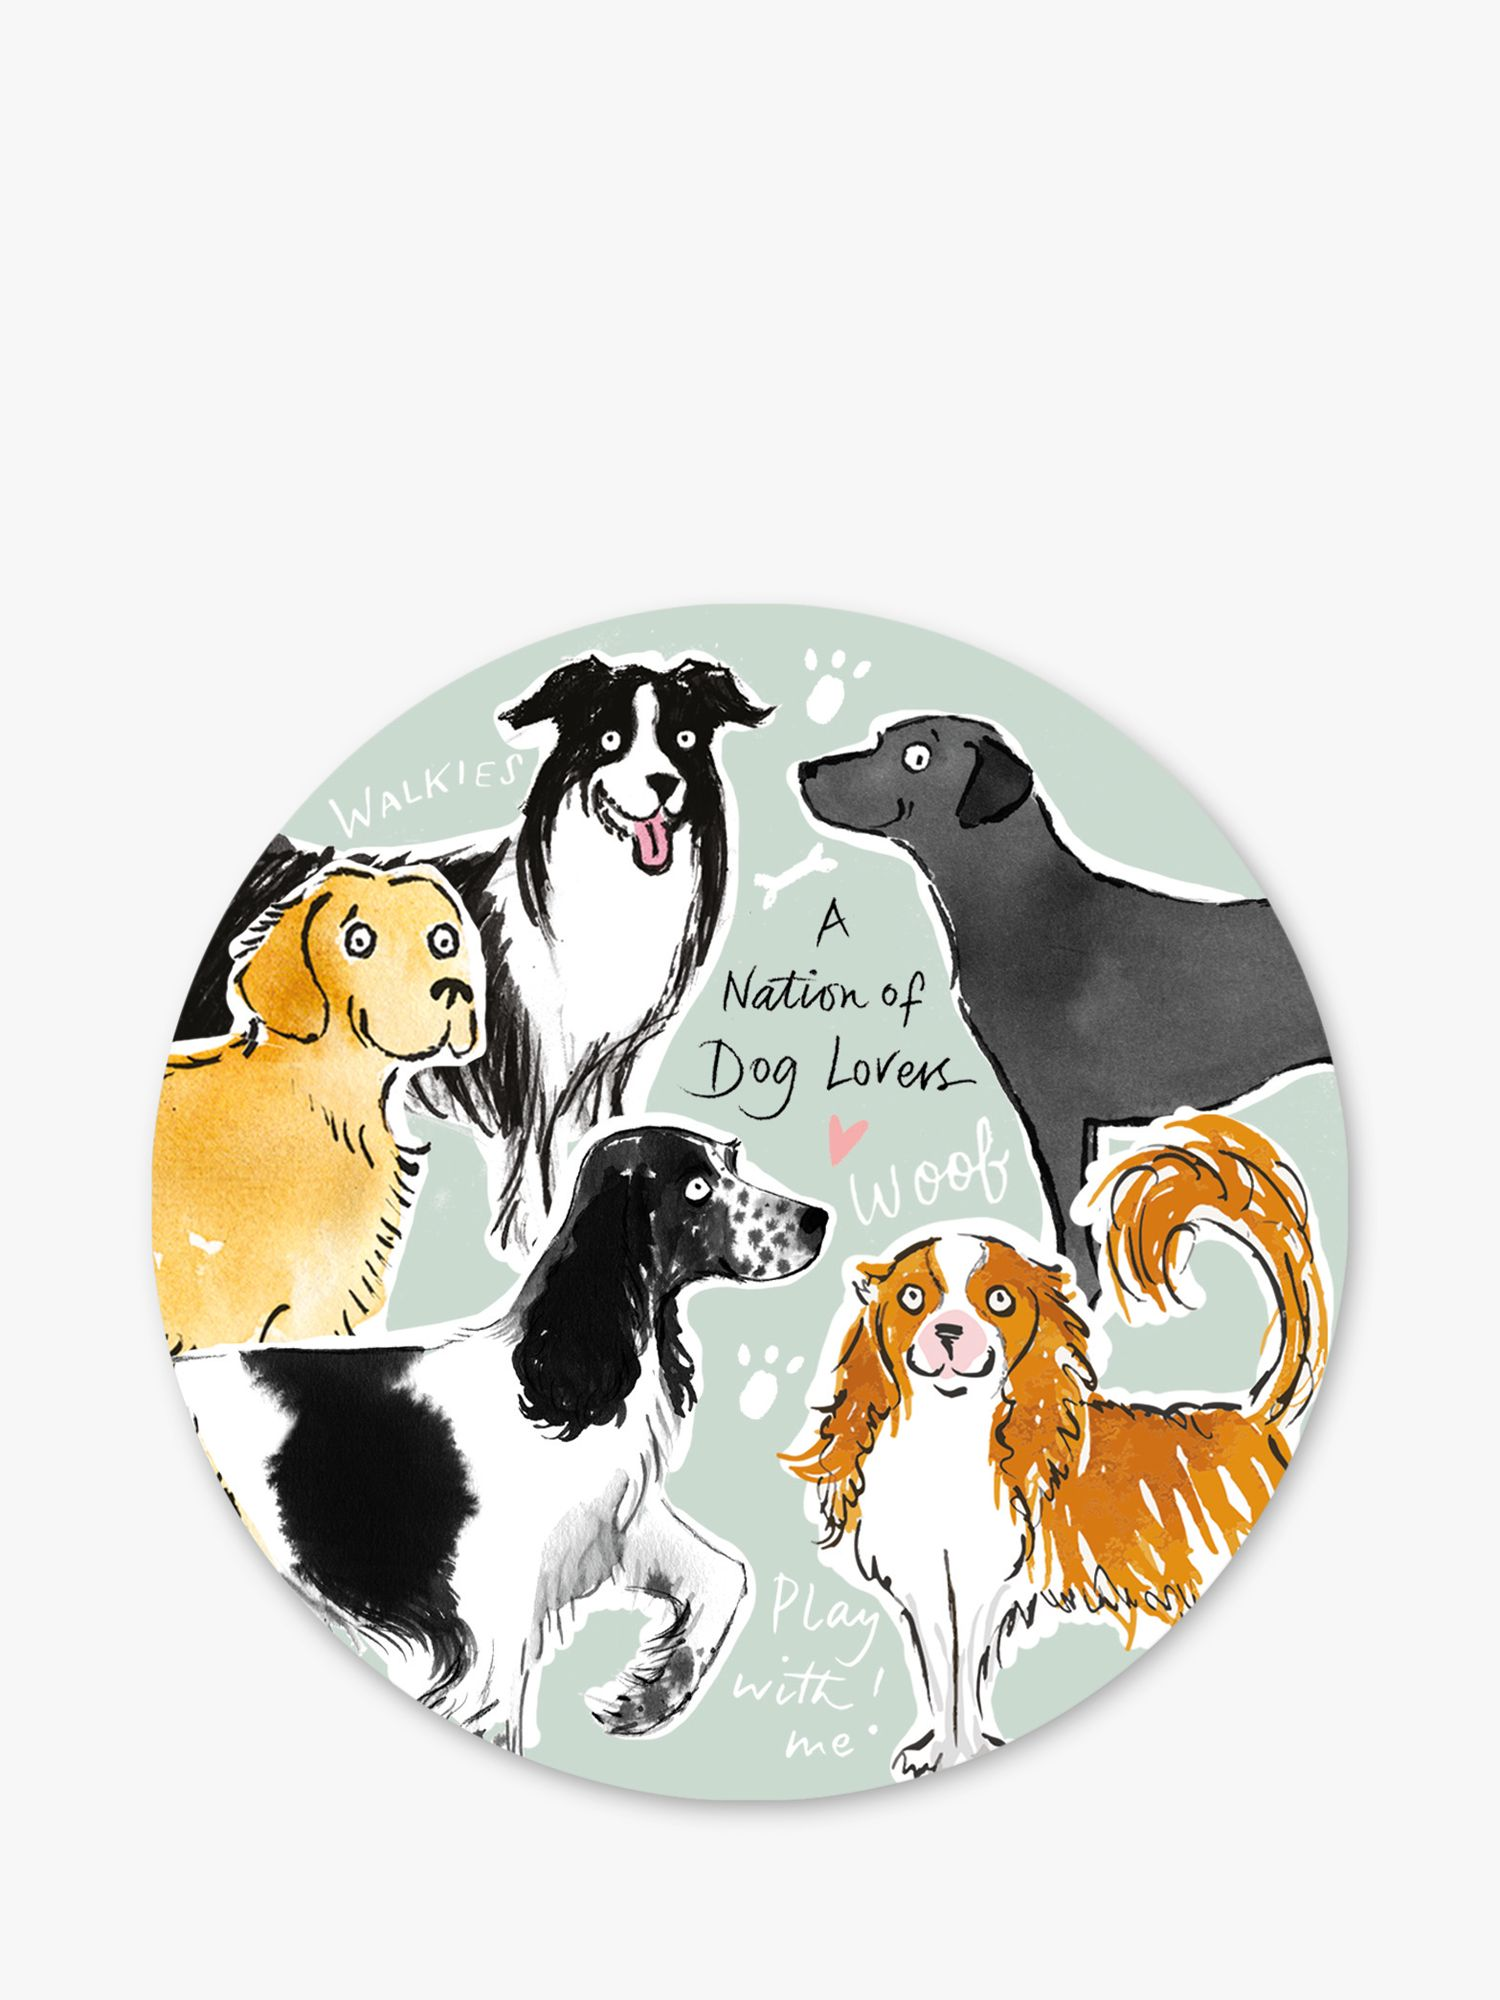 A Nation of Dog Lovers Dog Coaster